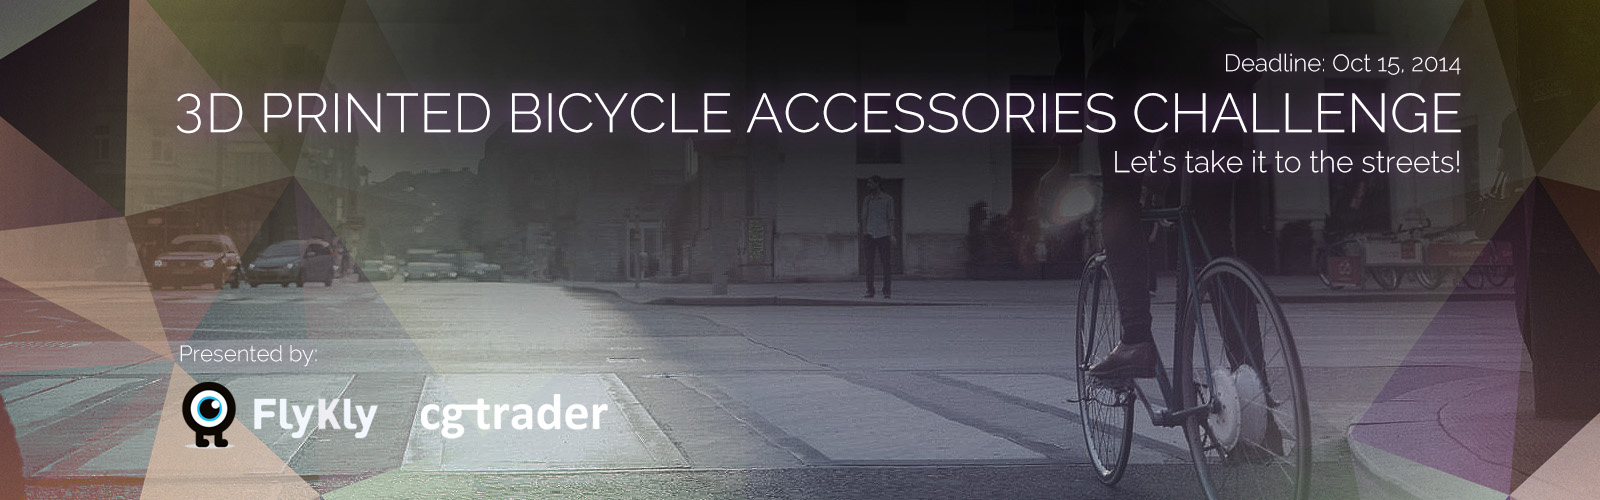 3D Printed Bicycle Accessories Challenge